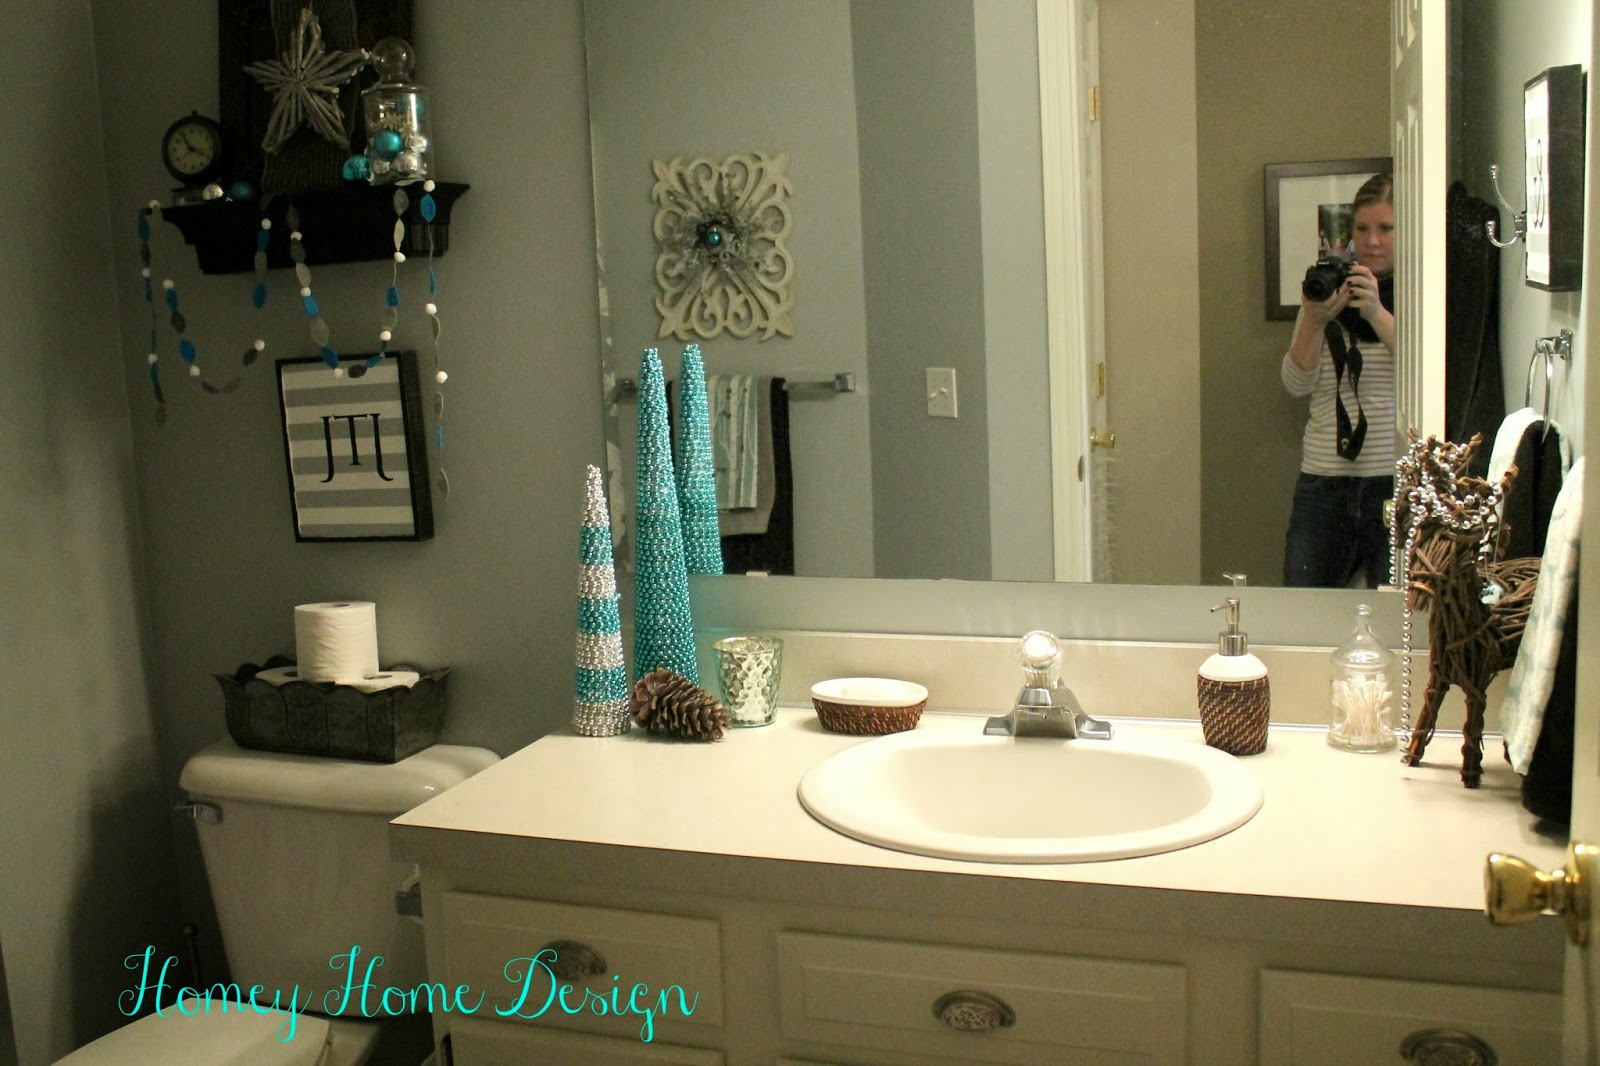 Homey home design bathroom christmas ideas for Bathroom themes